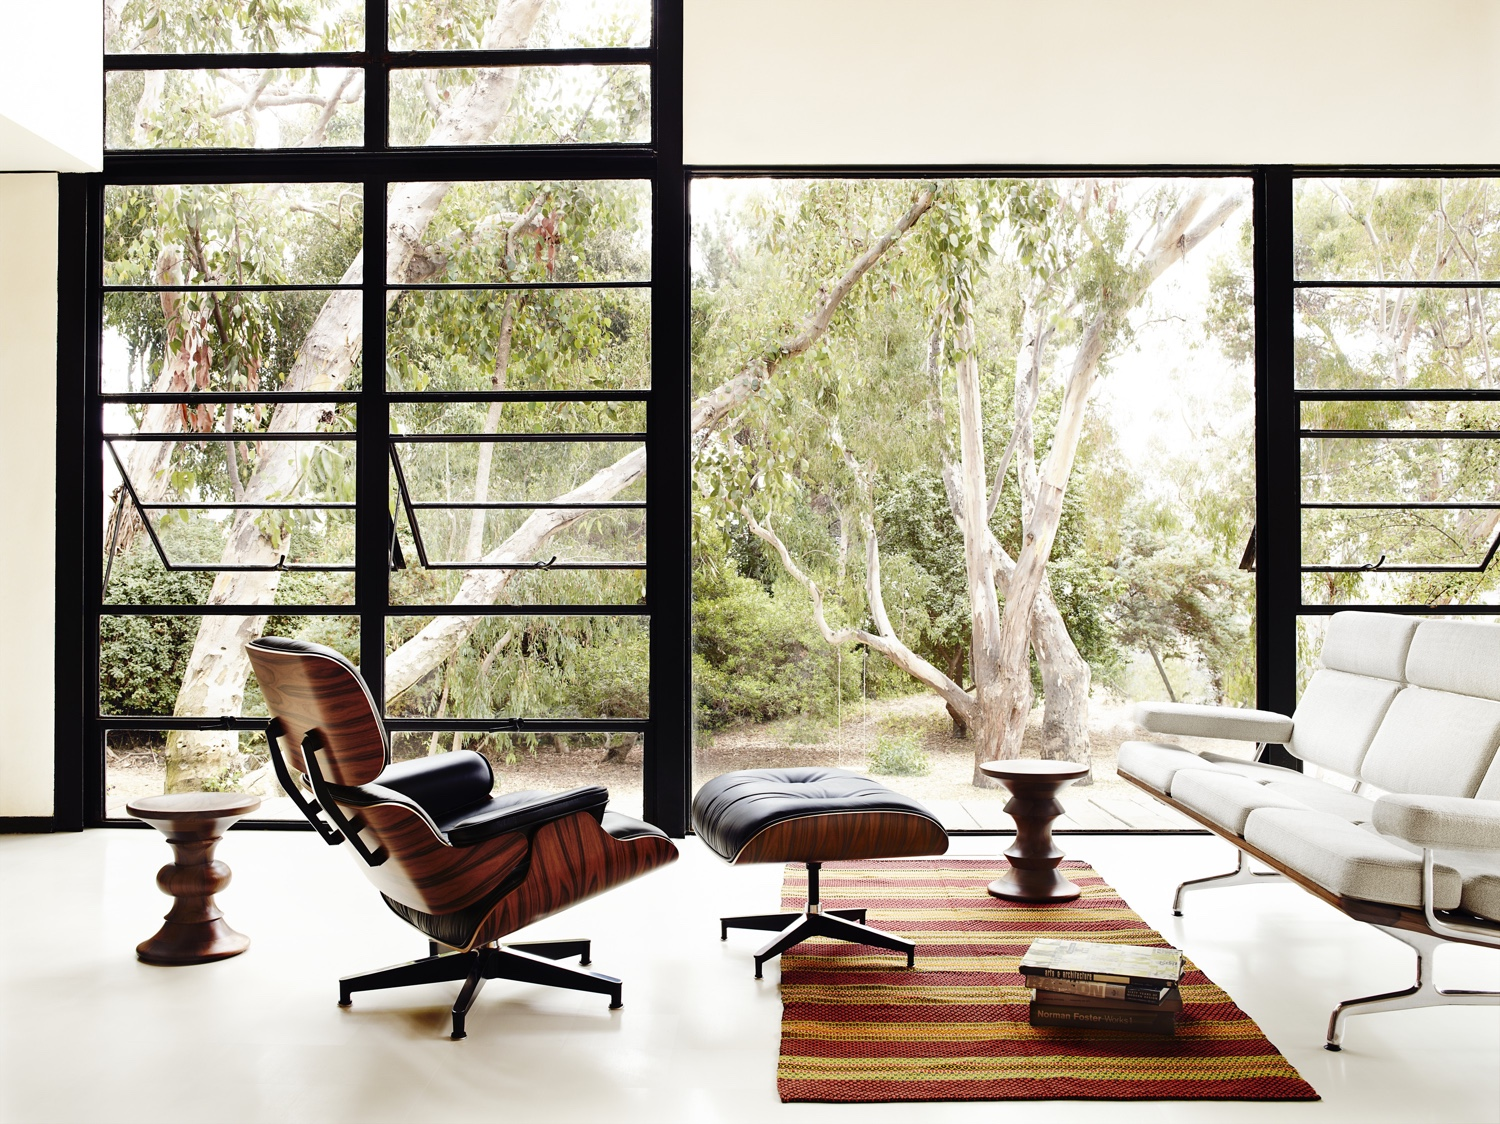 Eames-House-with-Eames-Classic-Furniture.jpg